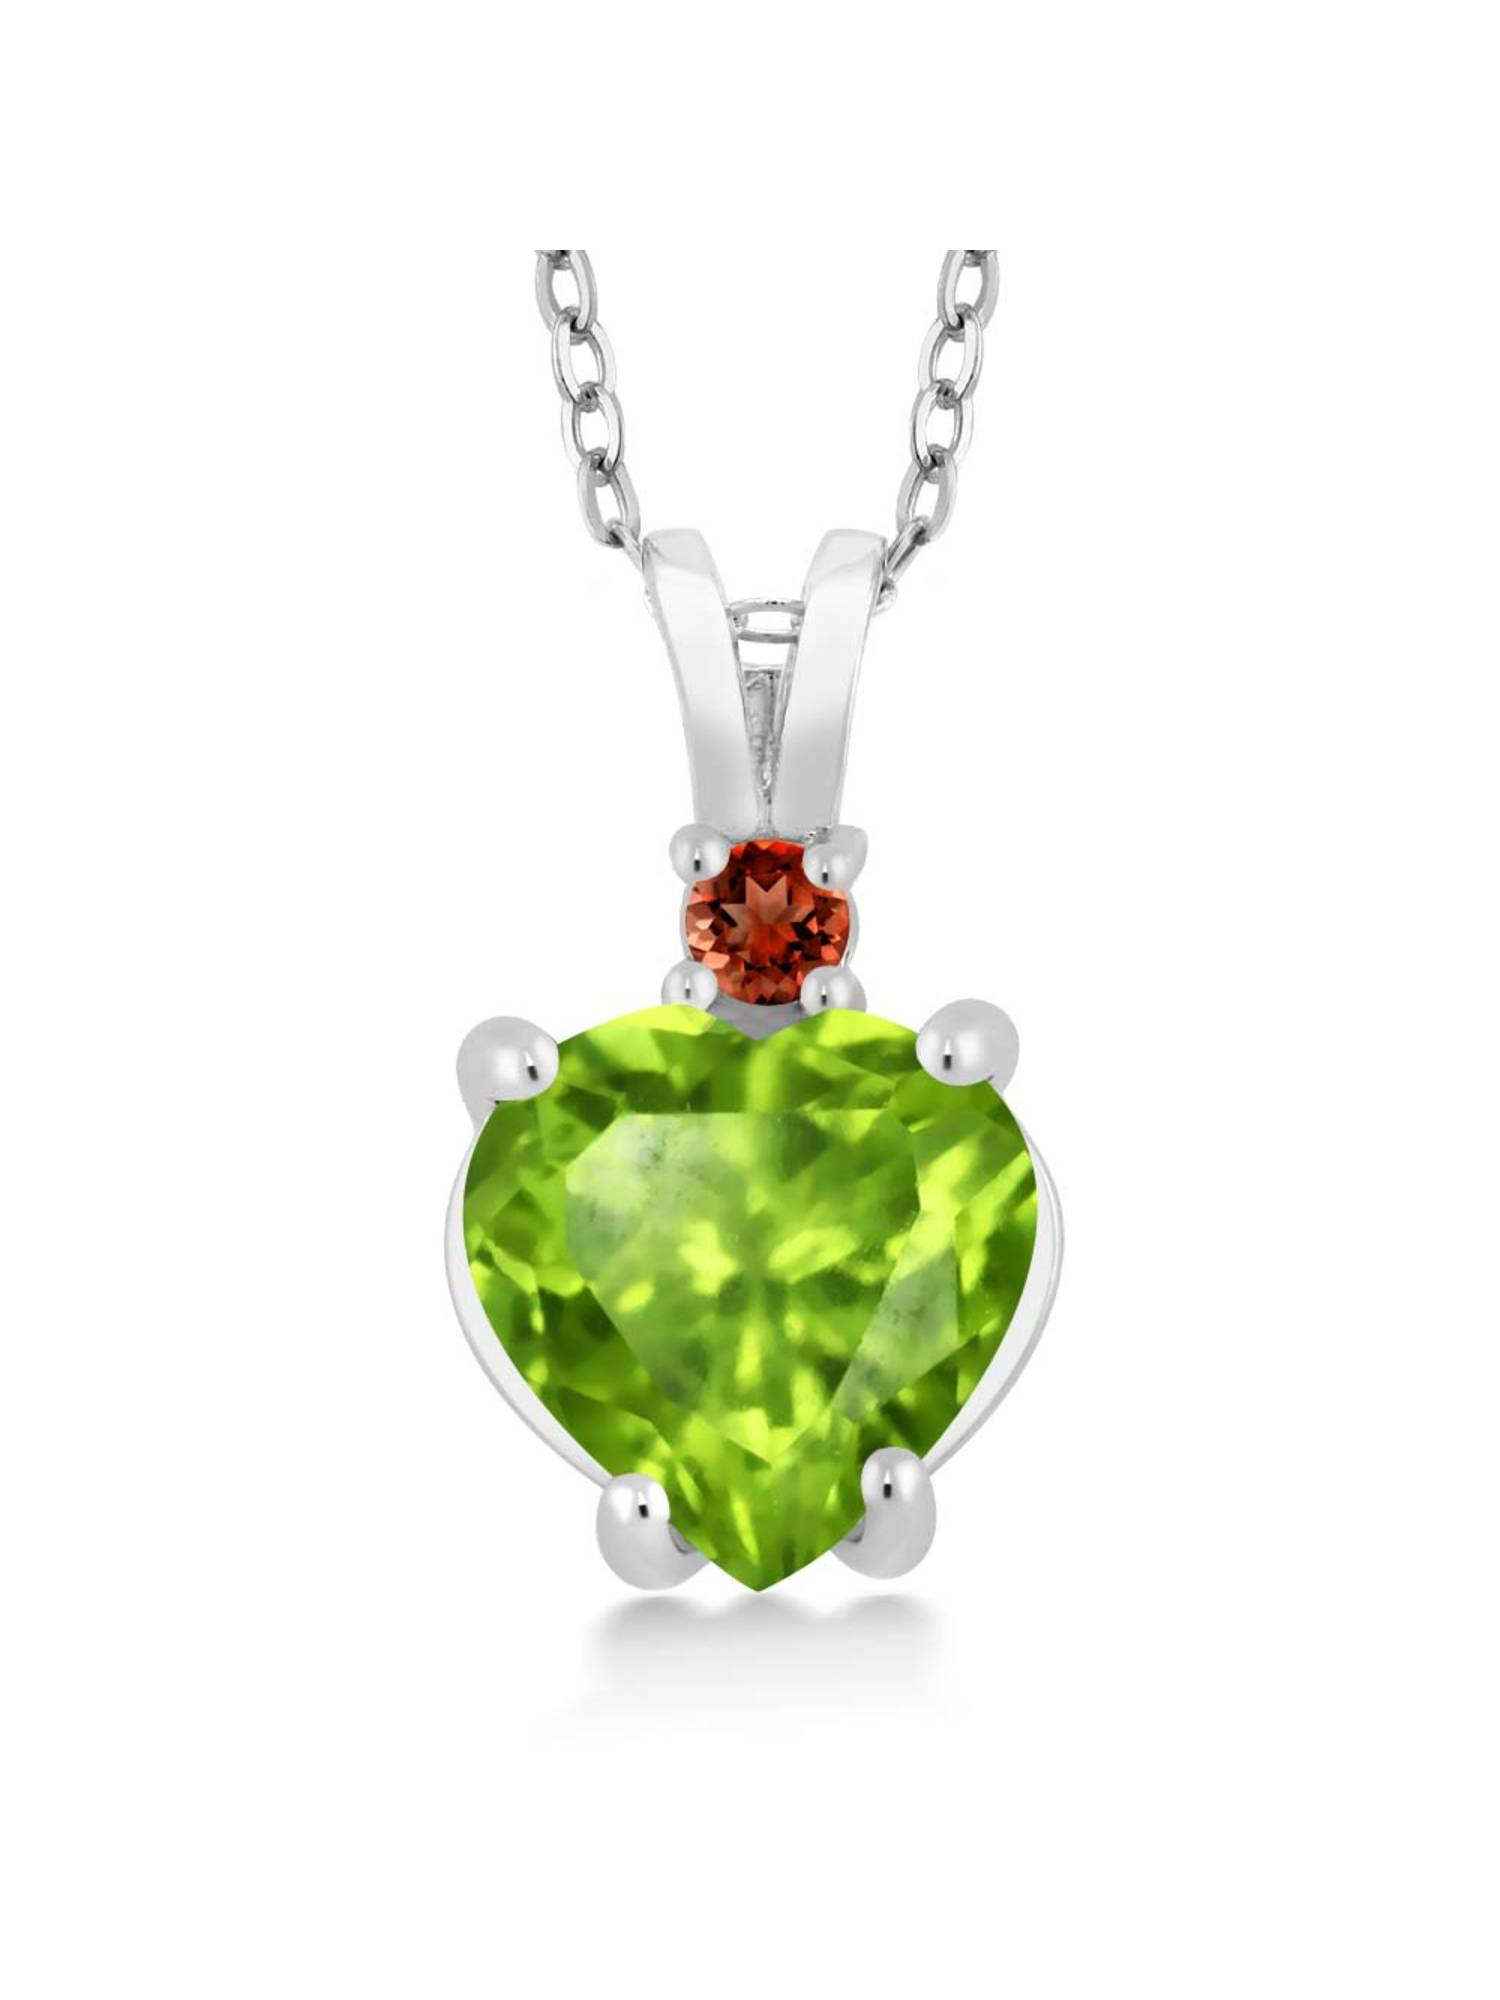 14K White Gold Heart Pendant set with 1.54 Ct Green Peridot Red Garnet by